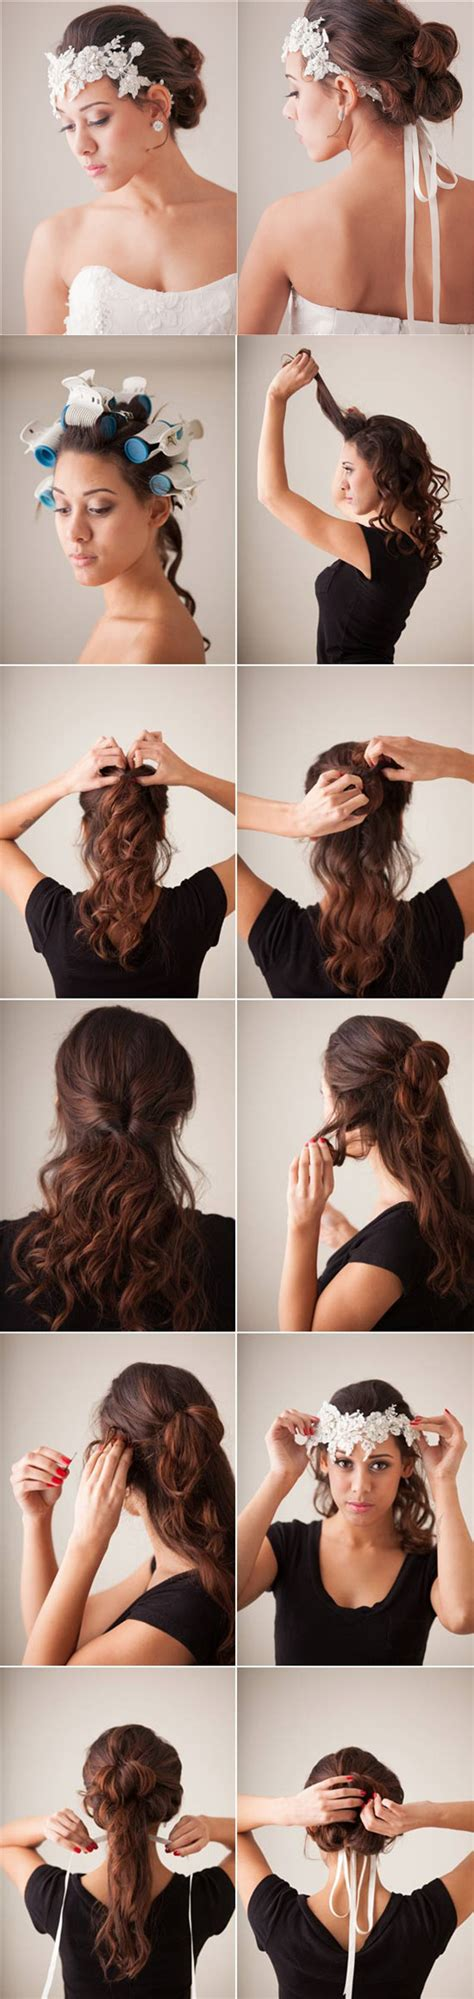 hairstyles with extensions tutorial braided updo hair archives vpfashion vpfashion